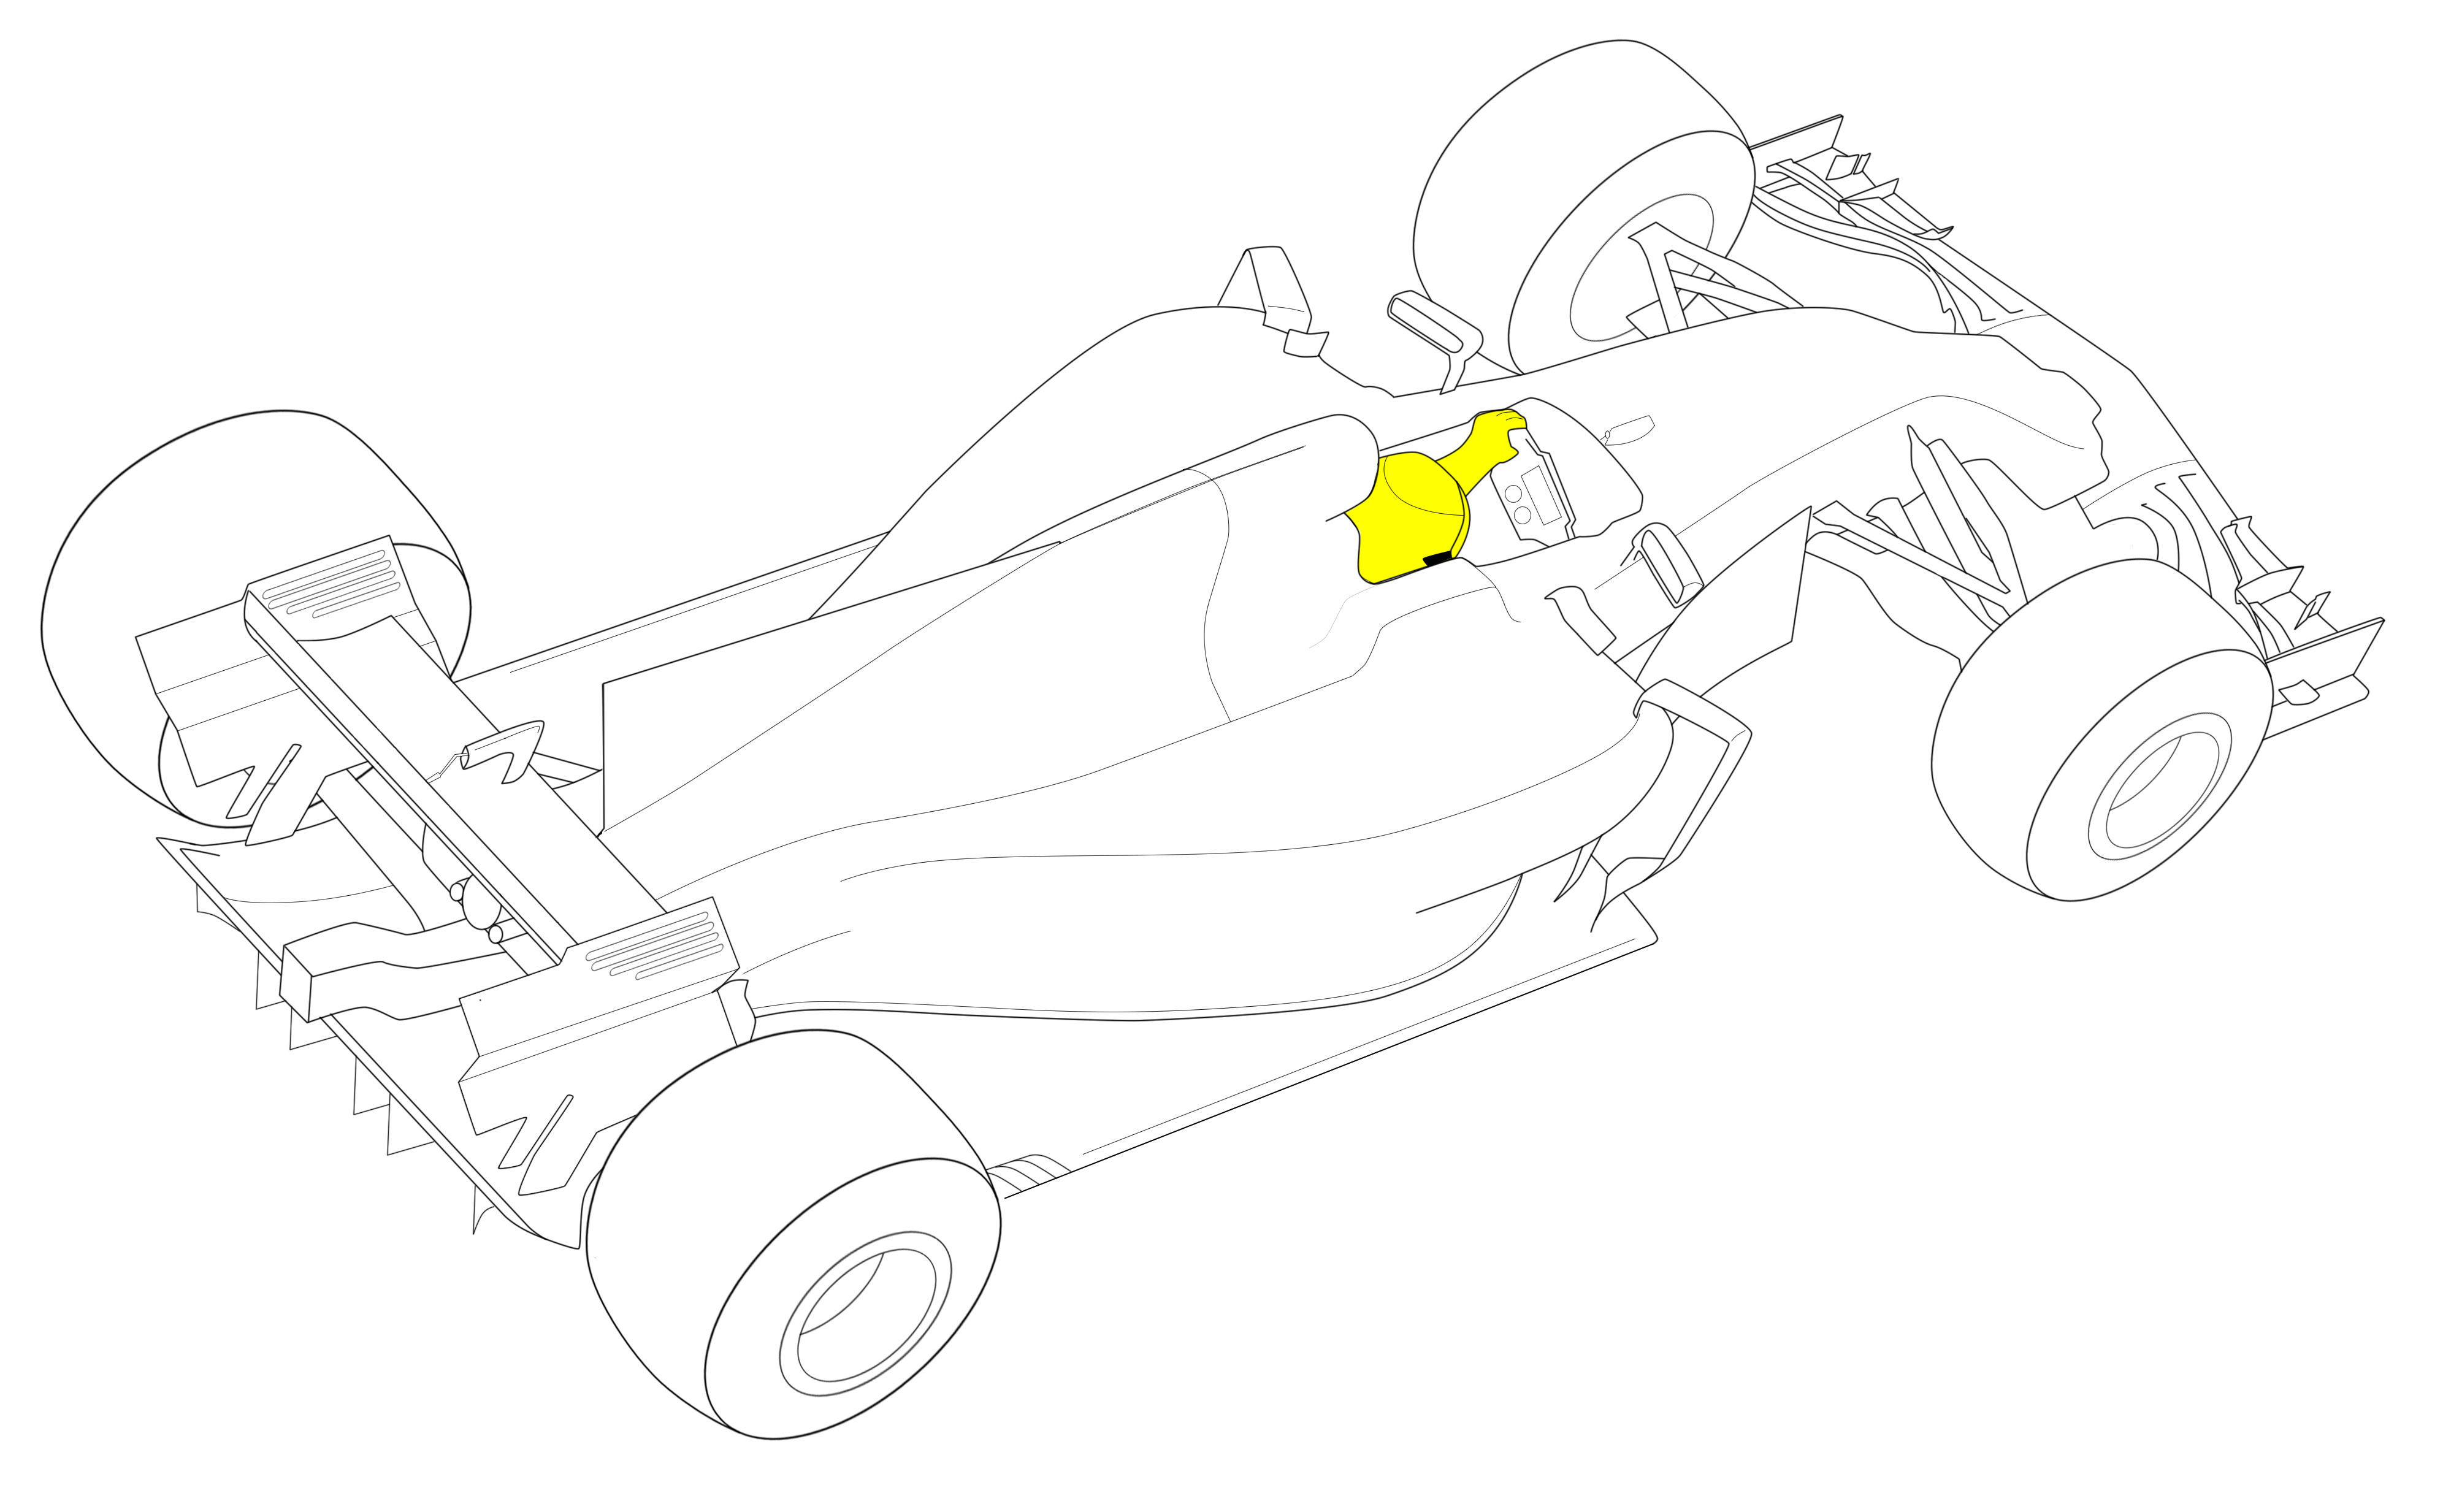 2017 F1 Technical preview: the Chassis